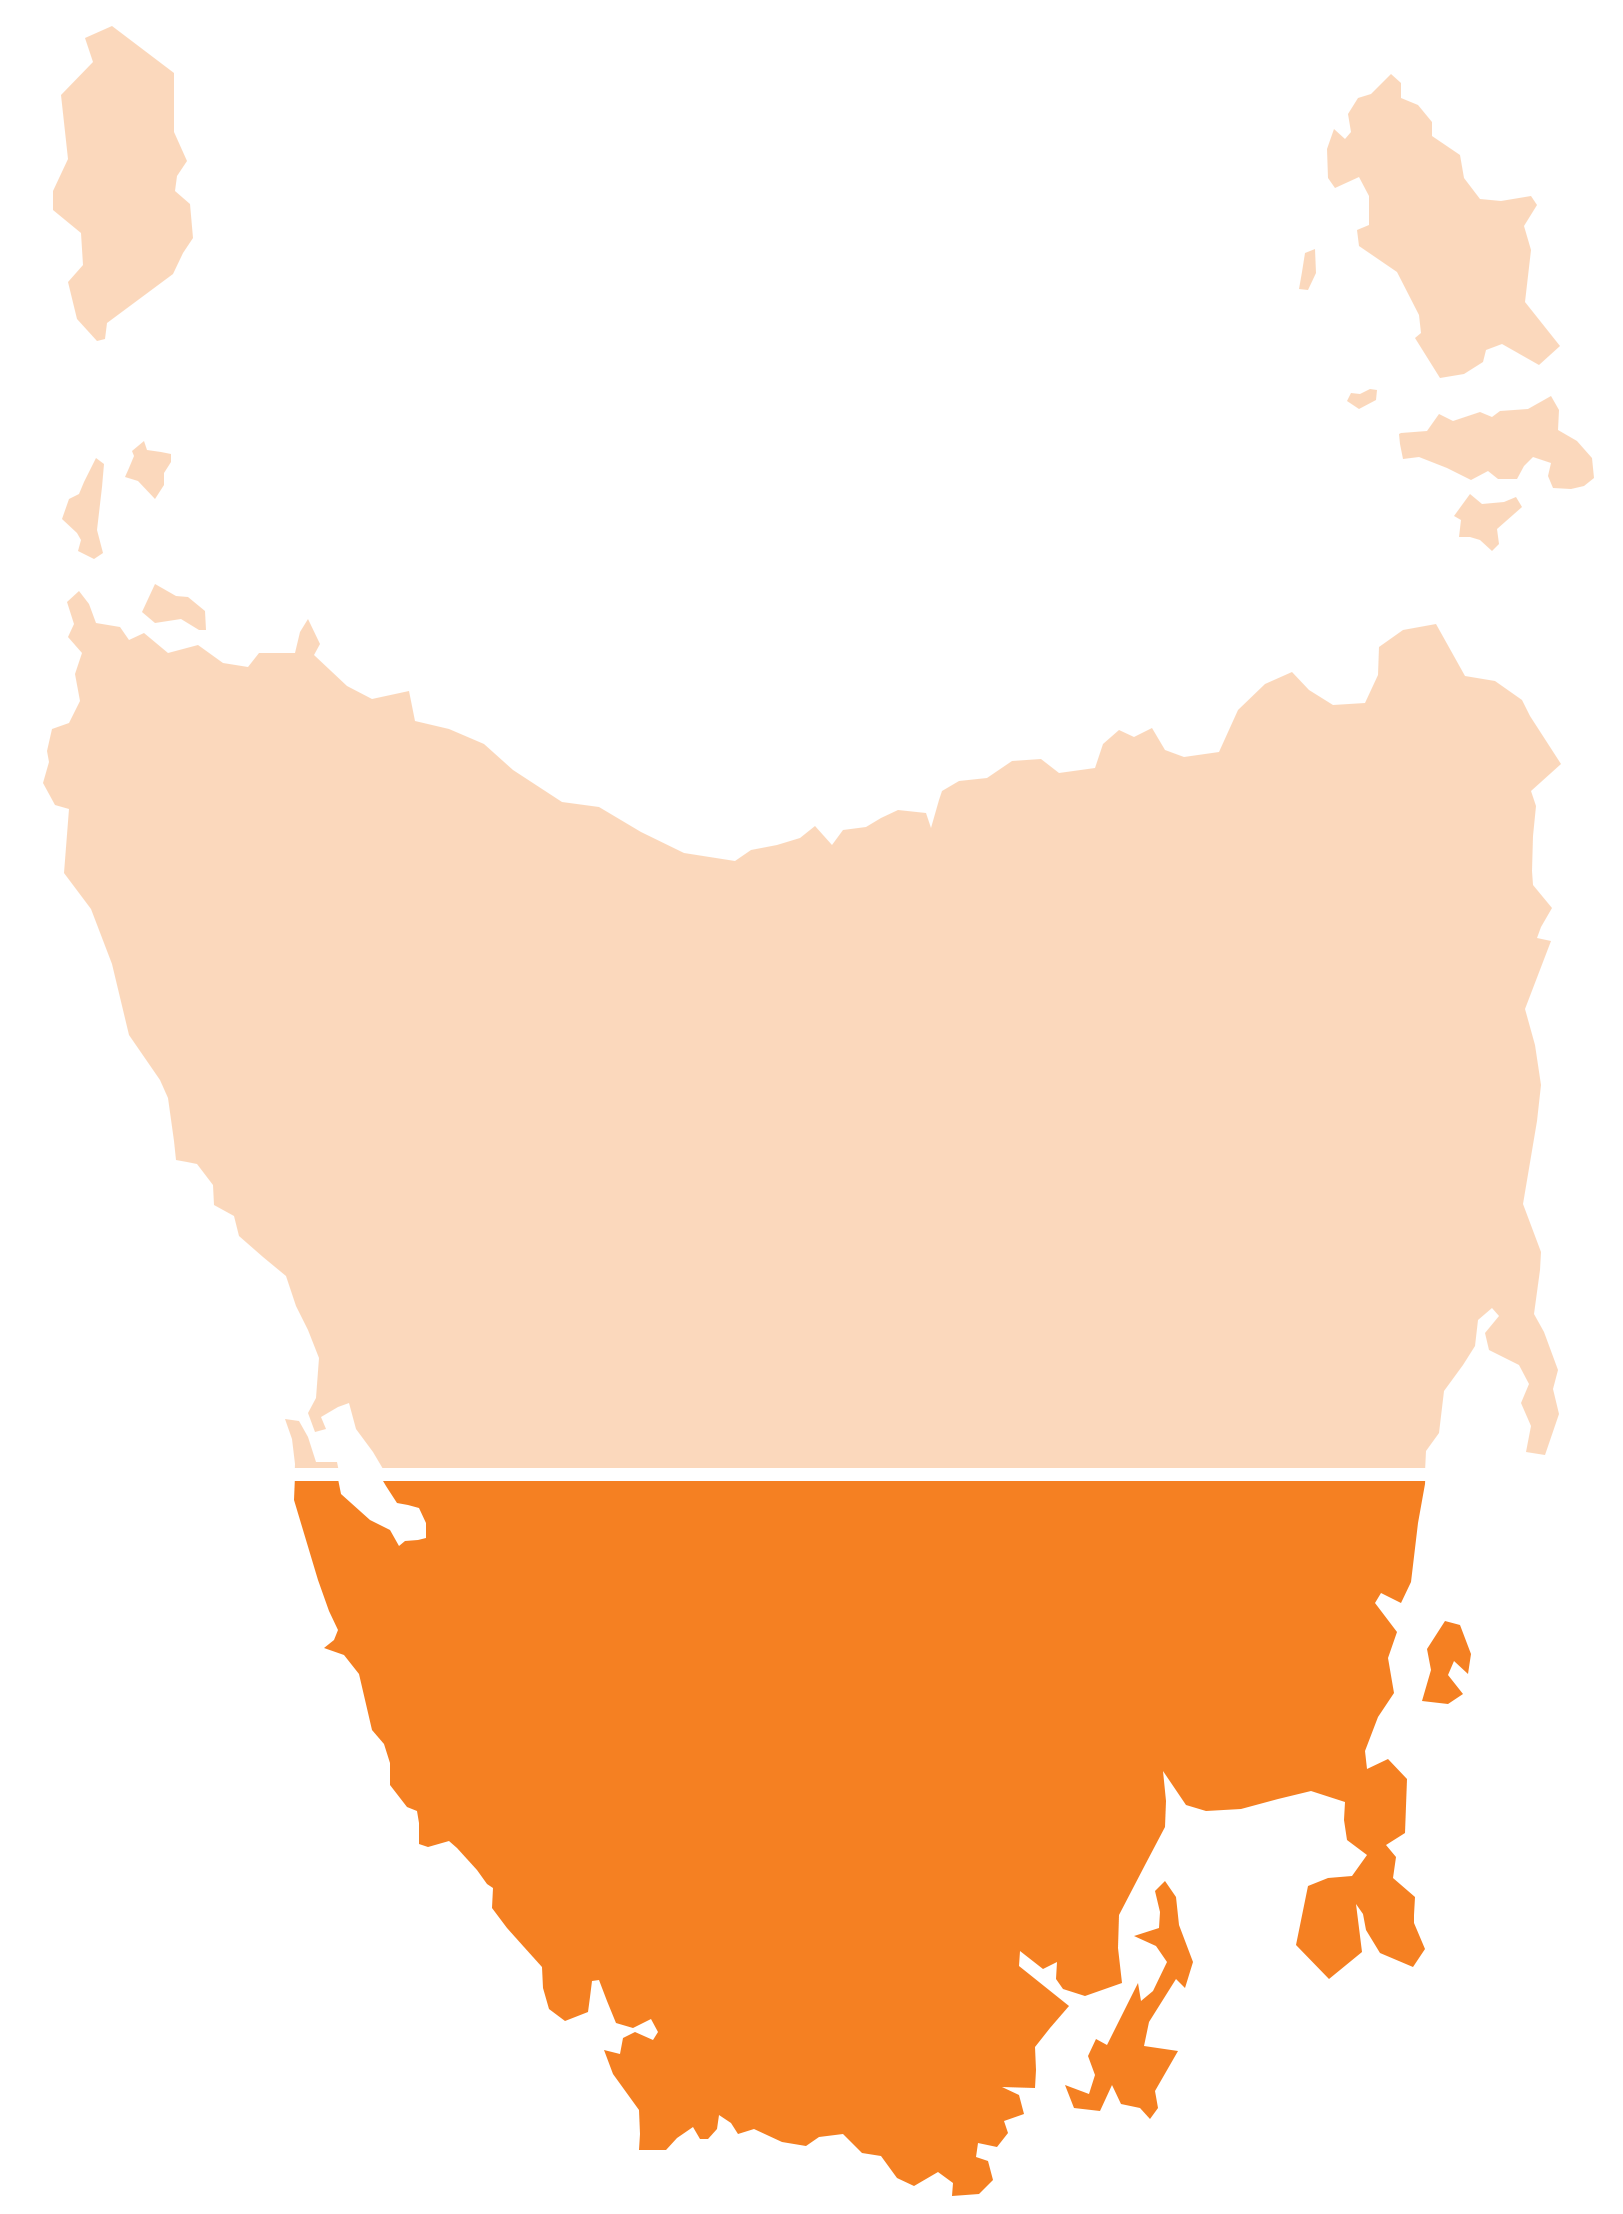 Map of Tasmania and the South highlighted